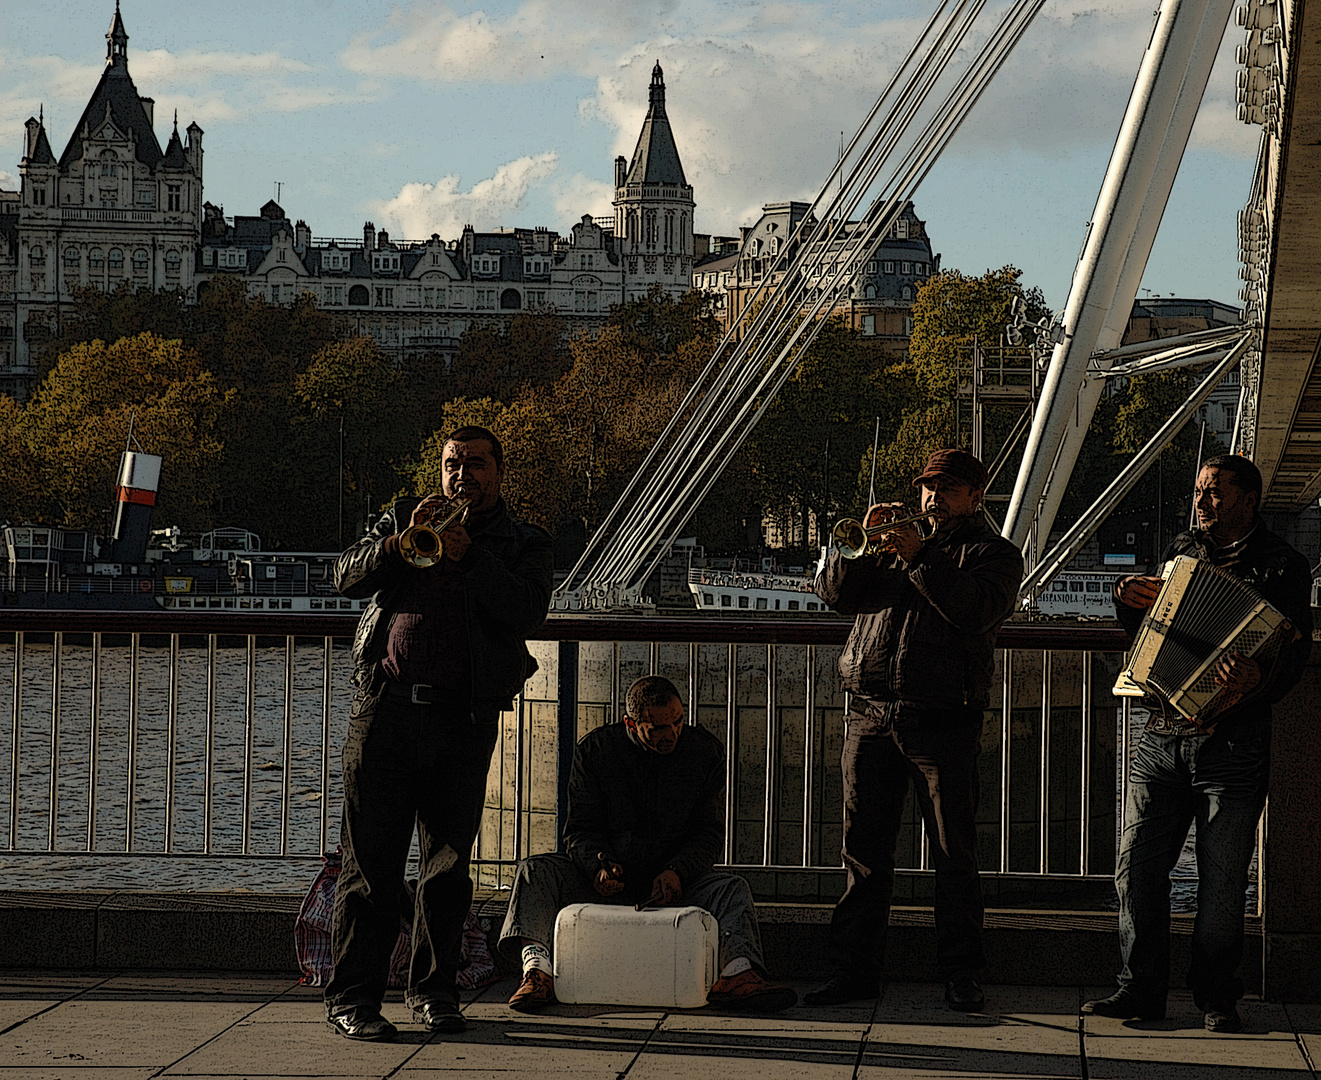 Streetband in London